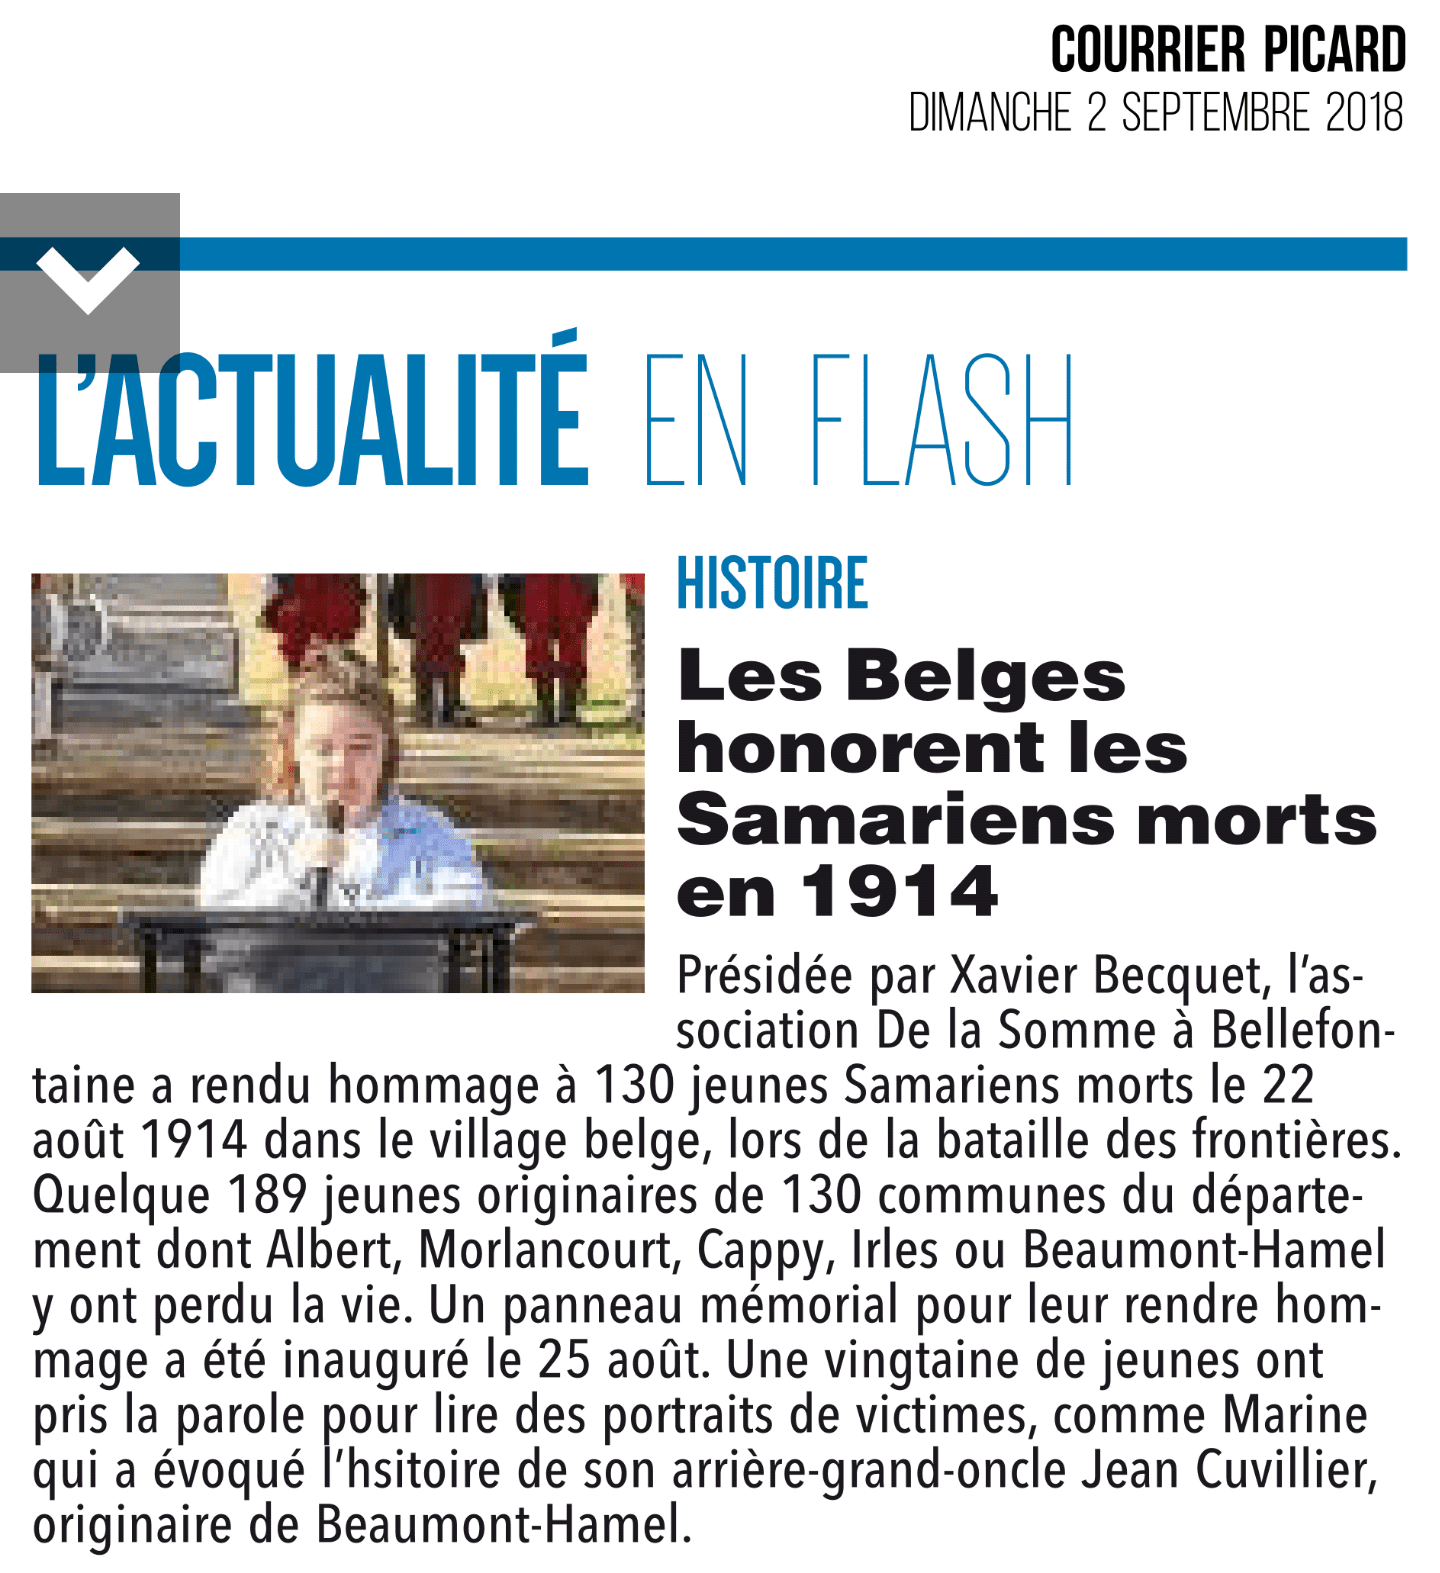 Courrier Picard Somme 2 septembre